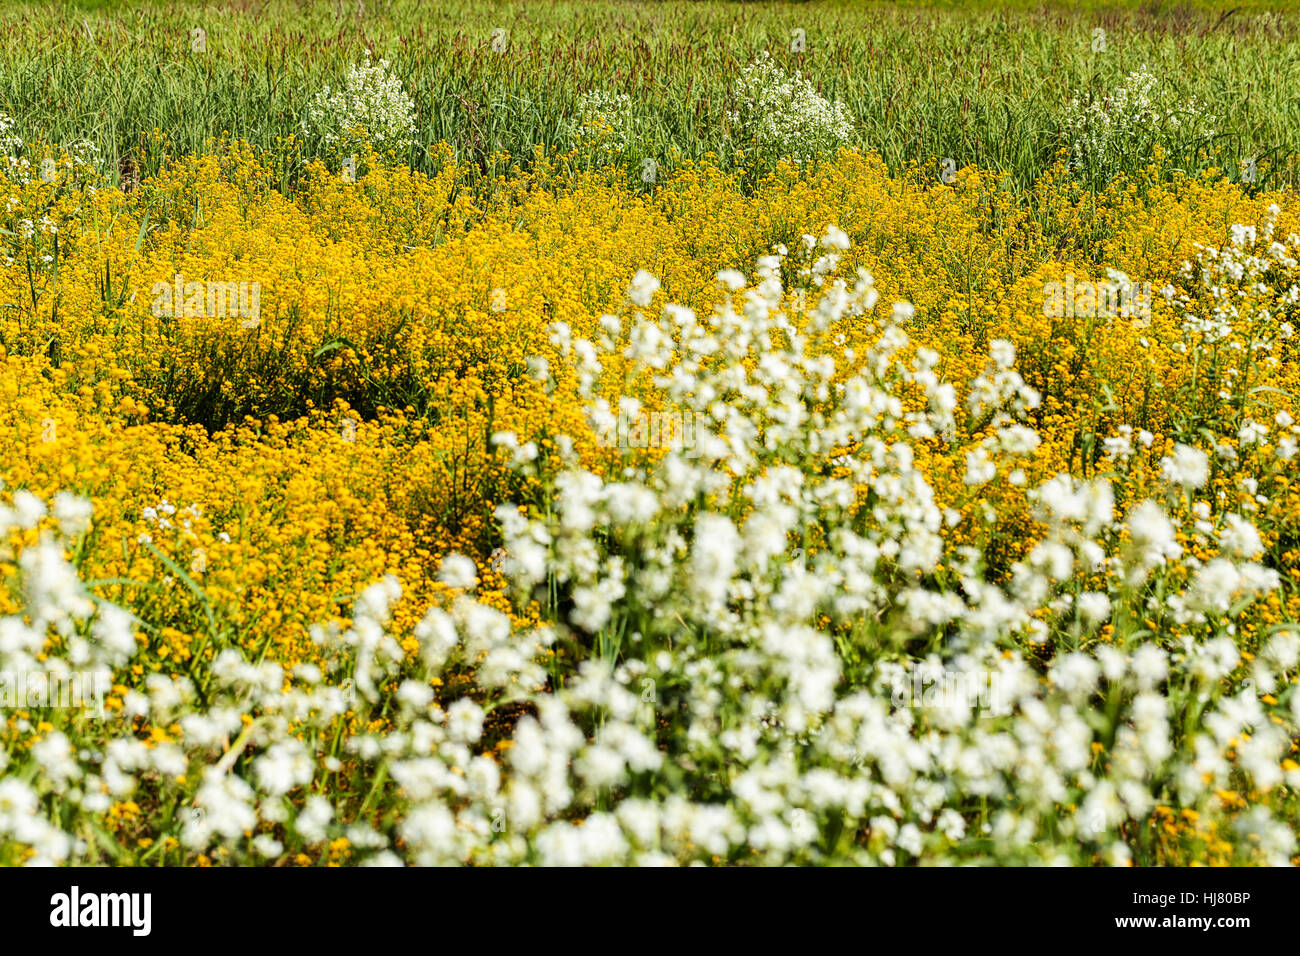 Kinds of yellow and white flowers in the meadow note shallow depth kinds of yellow and white flowers in the meadow note shallow depth of field mightylinksfo